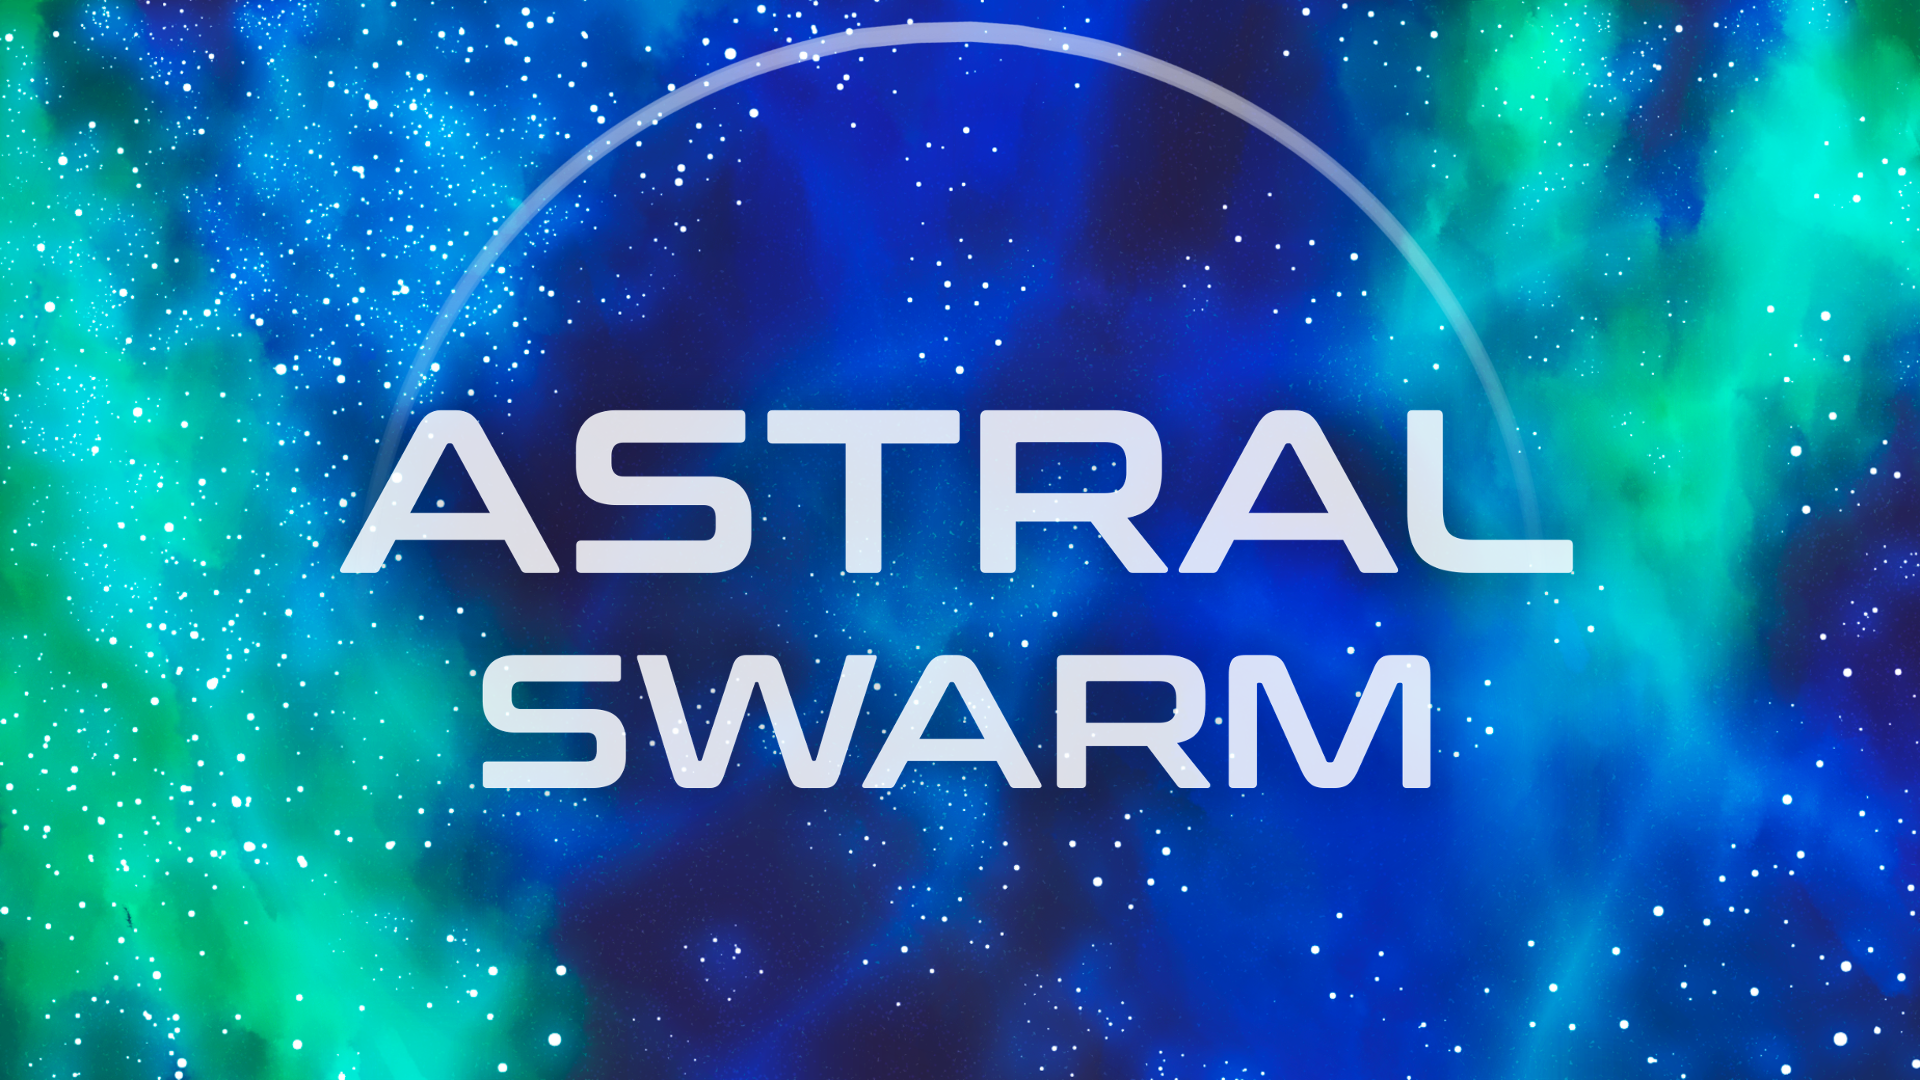 Astral Swarm